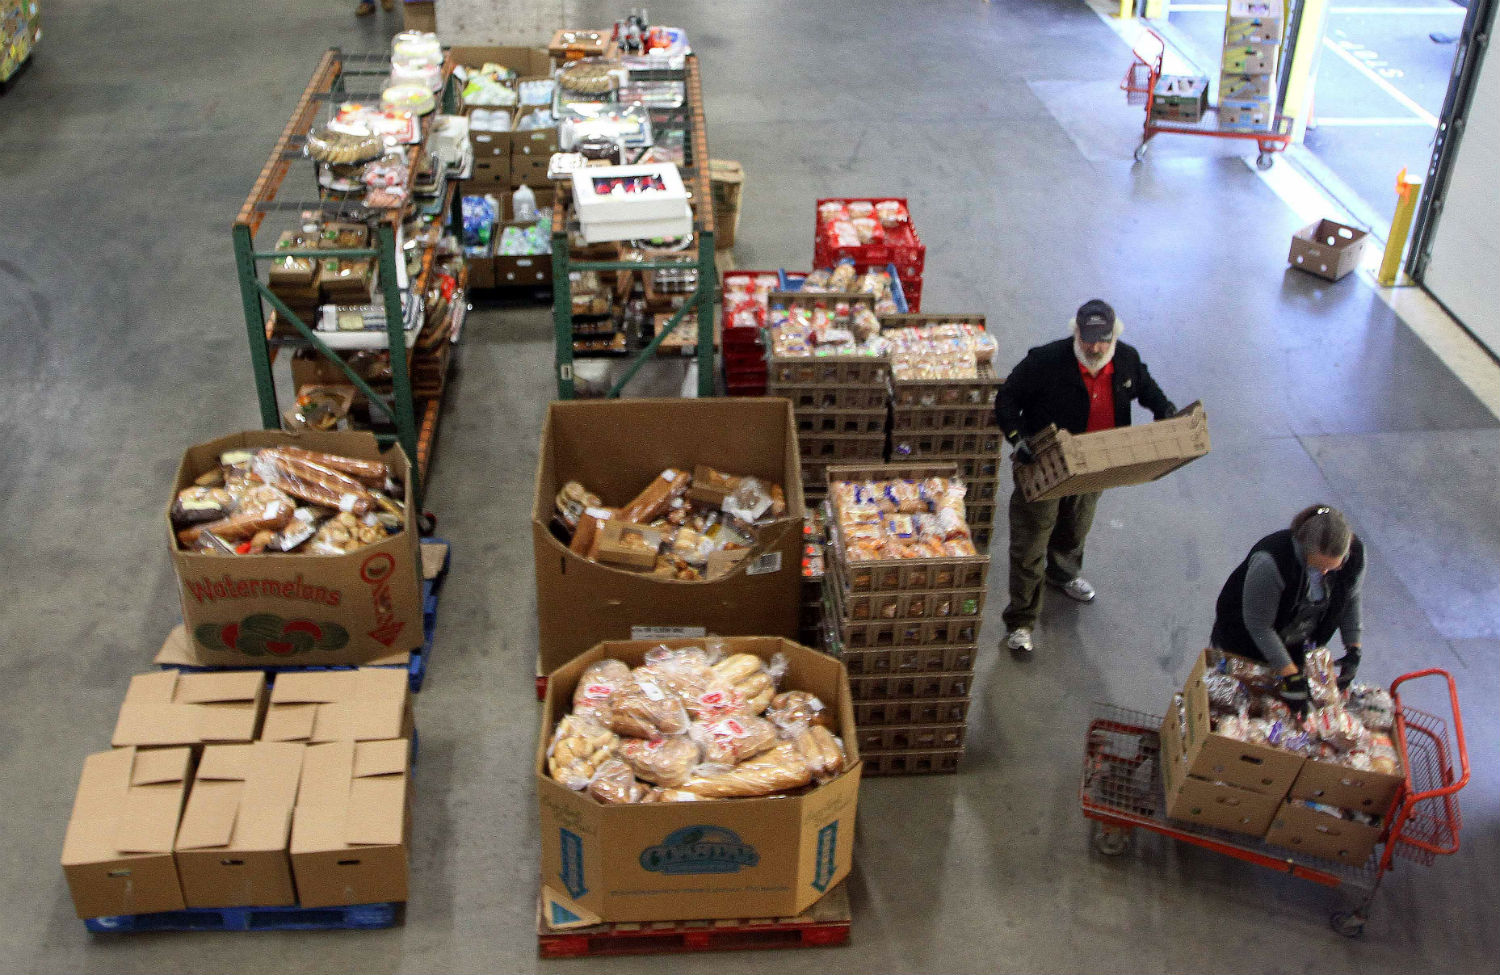 pVolunteers-prepare-food-for-distribution-at-a-New-Hampshire-food-bank.-AP-ImagesJim-Colep